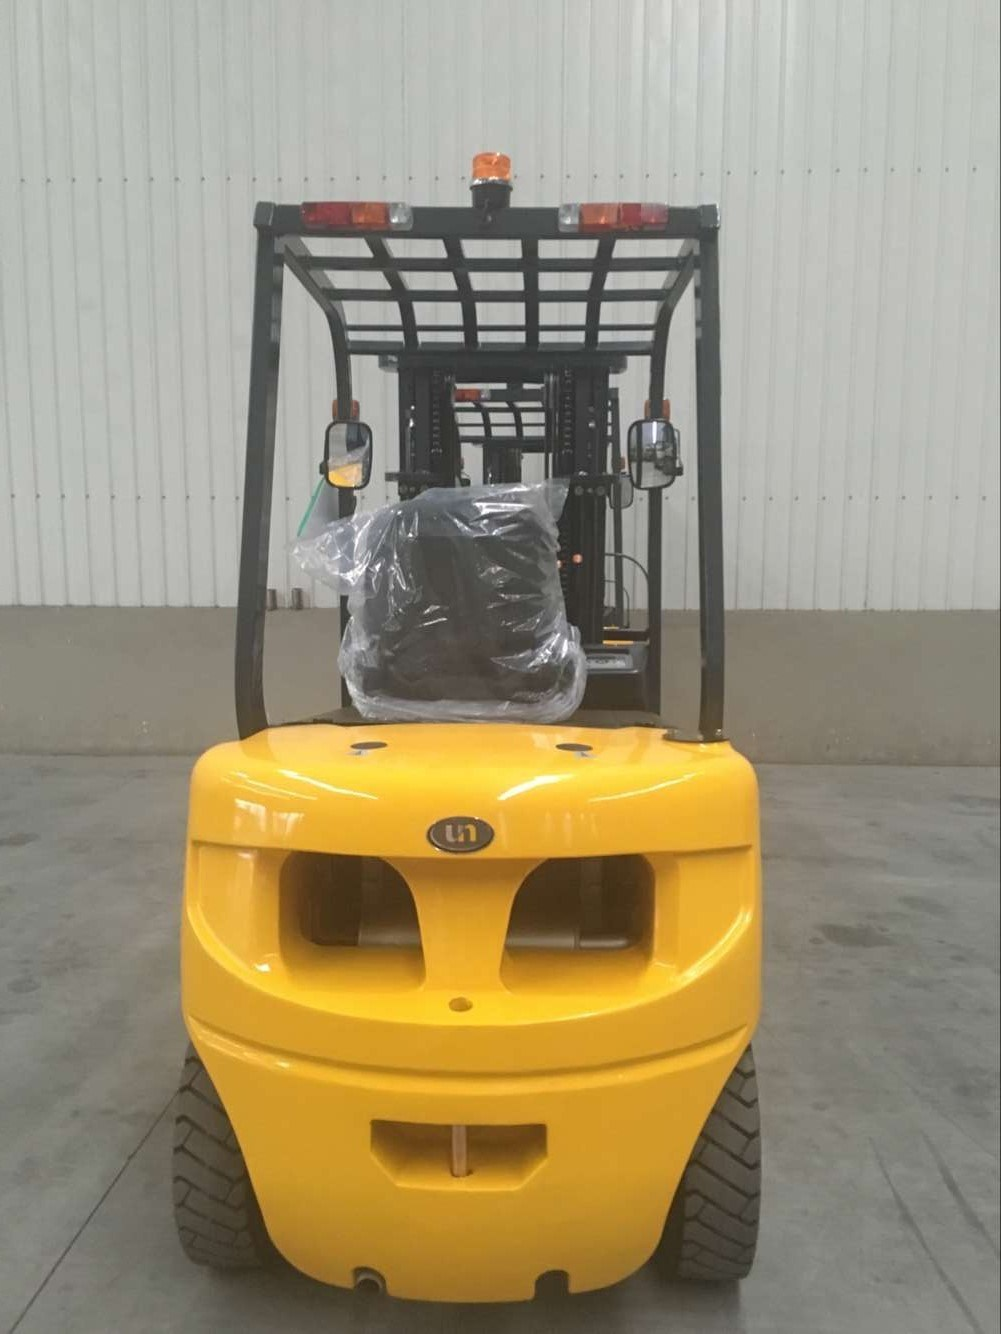 Un New Series Diesel Forklift 3 Ton Diesel Forklift with Japanese Engine 3 Meters Lifting Height Mast